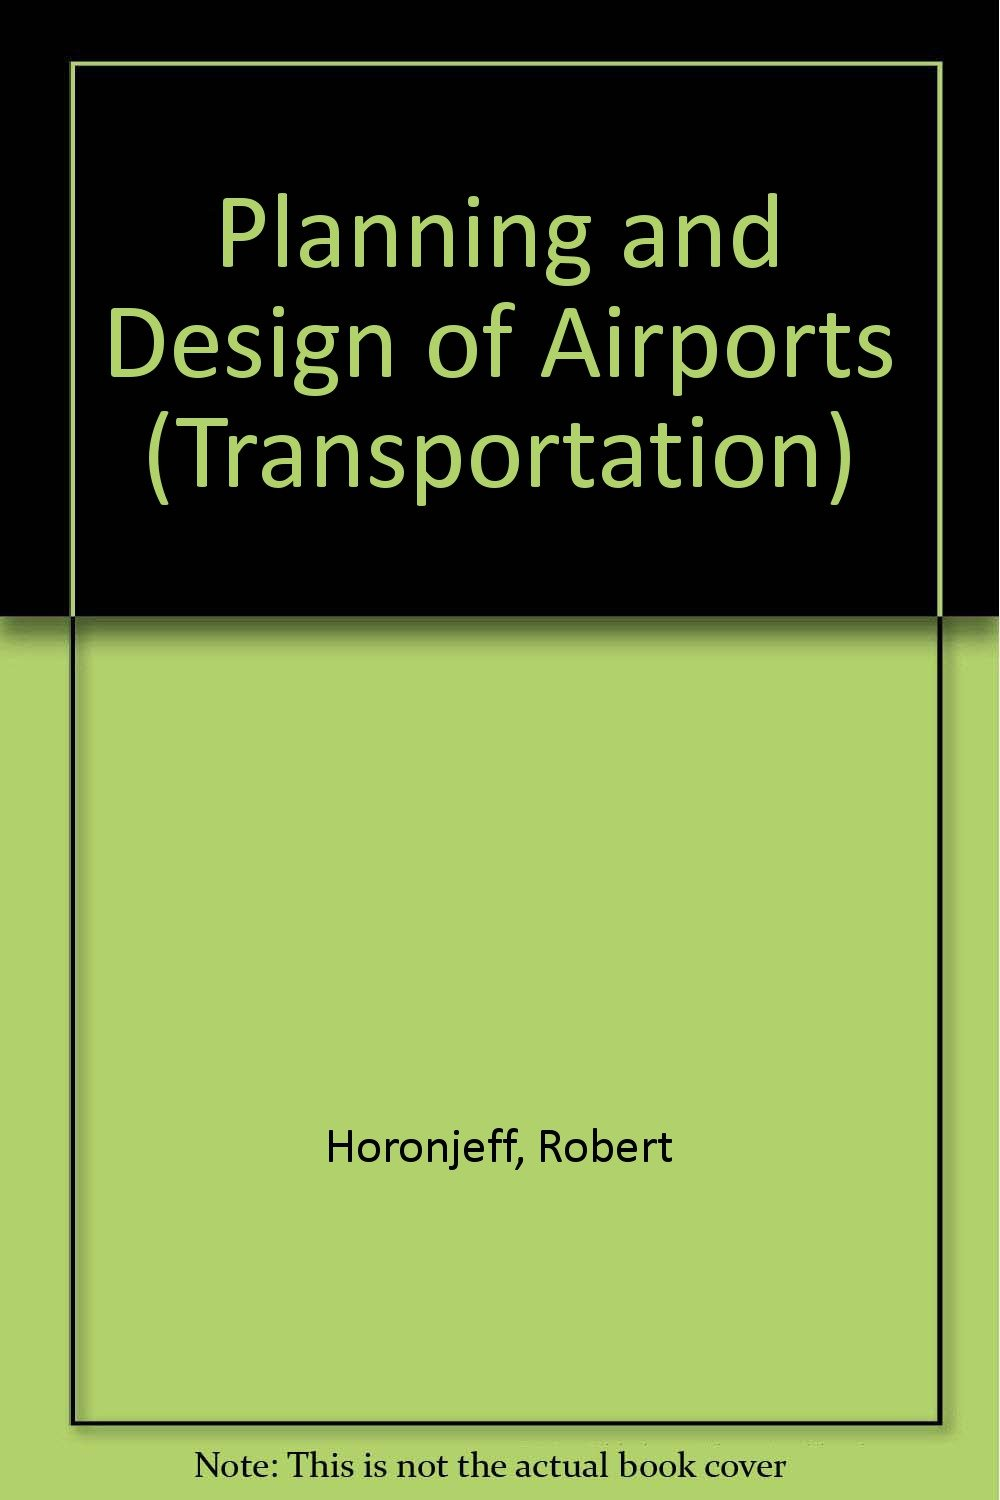 The Planning and Design of Airports